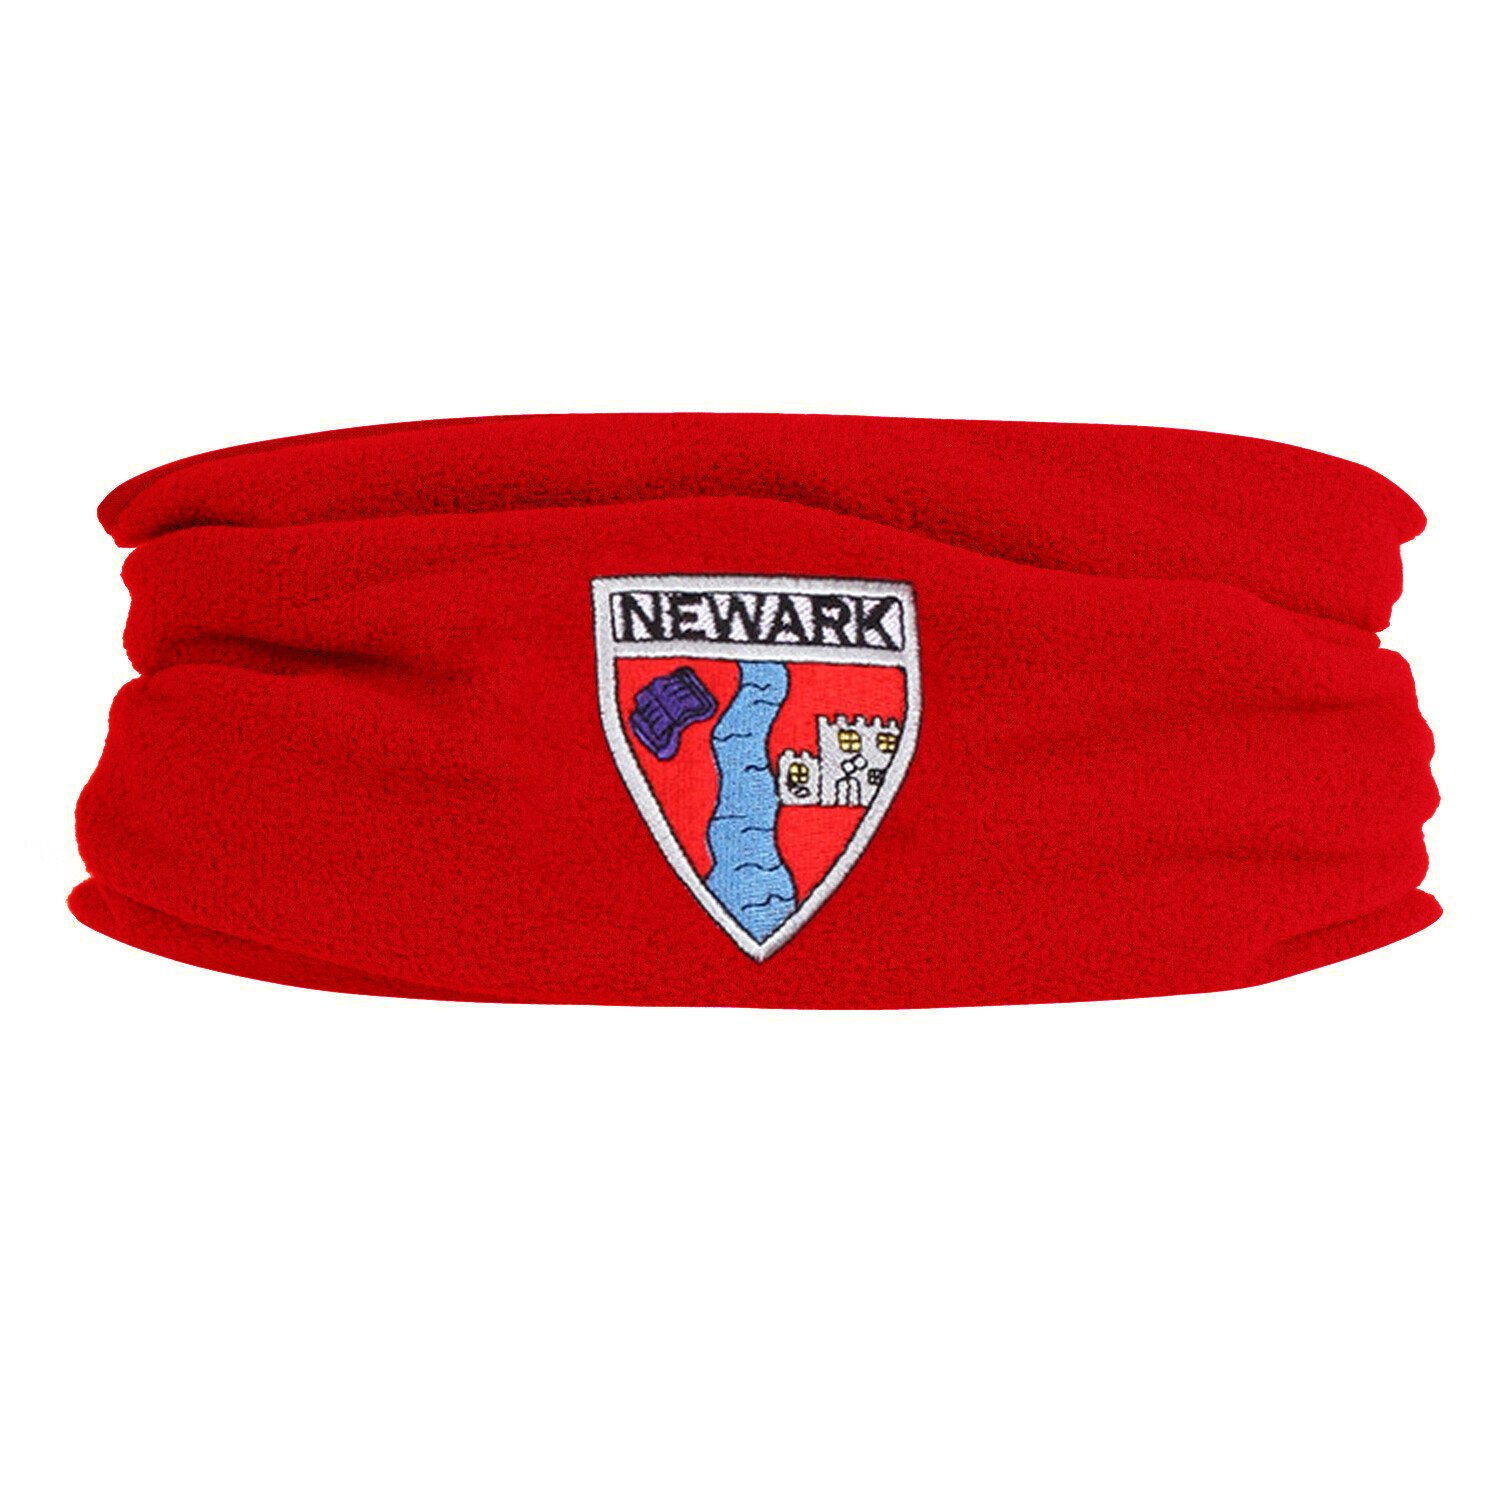 Newark Primary Staff Snood (RCSB920)